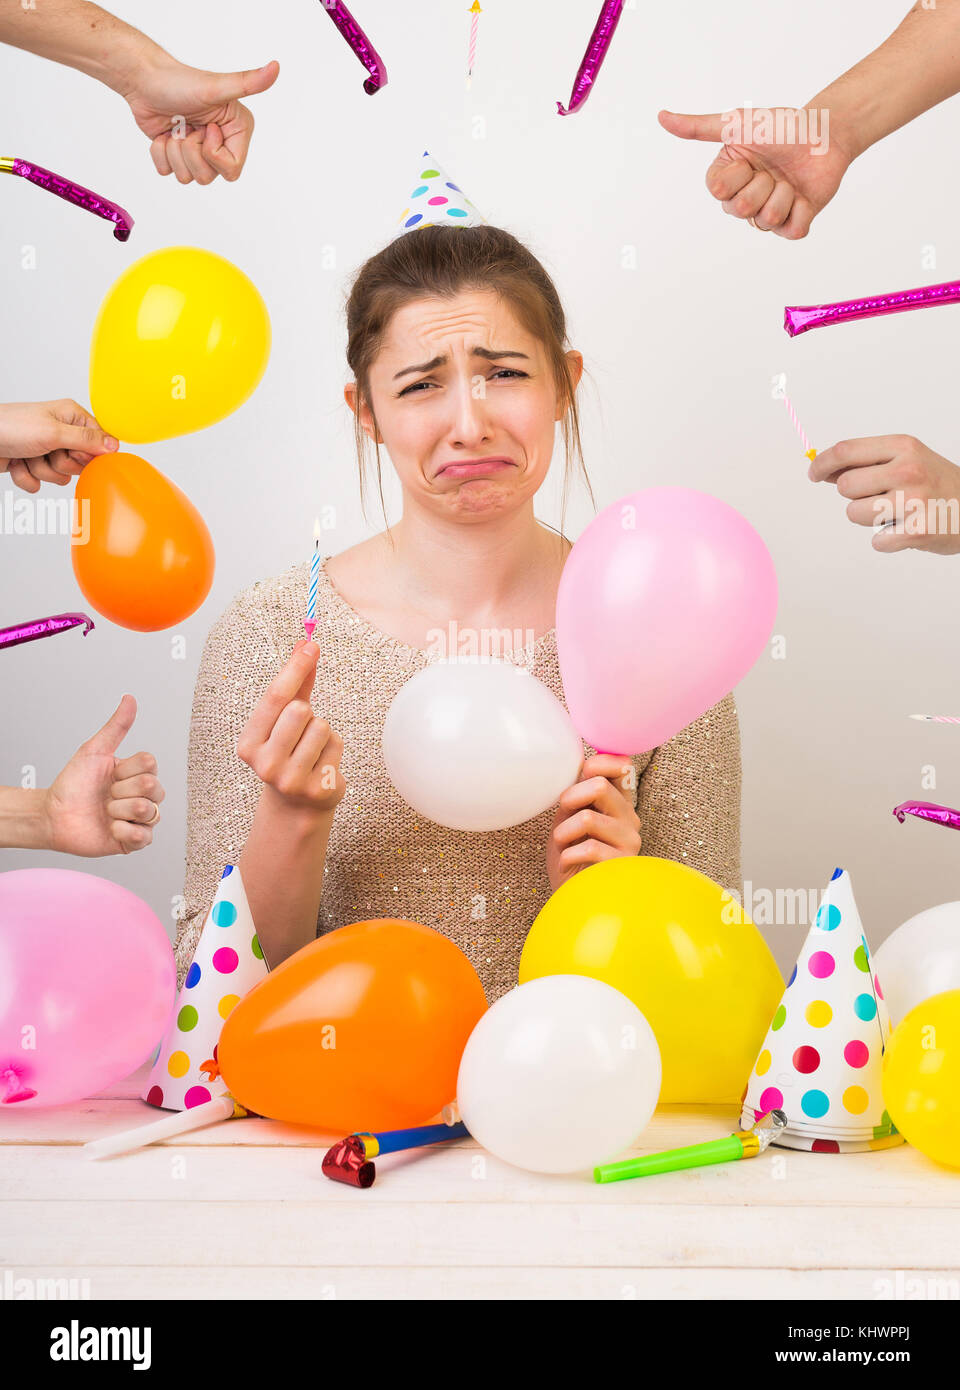 fail, surprise, anniversary concept. young caucasian woman with dark hair is surrounded by balloons and birthday - Stock Image